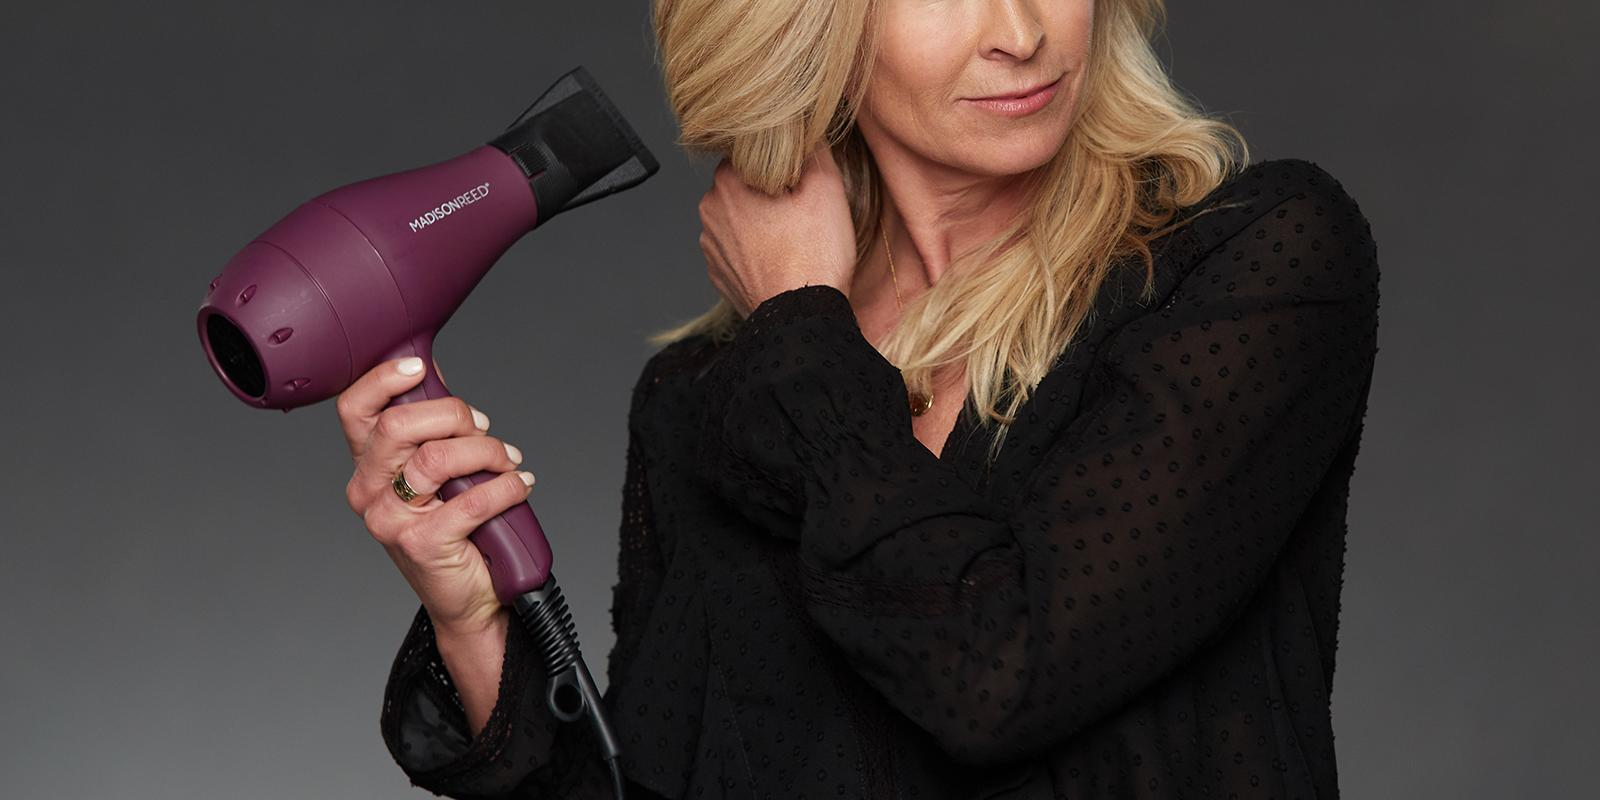 Introducing The Boss - Pro Ionic Hair Dryer